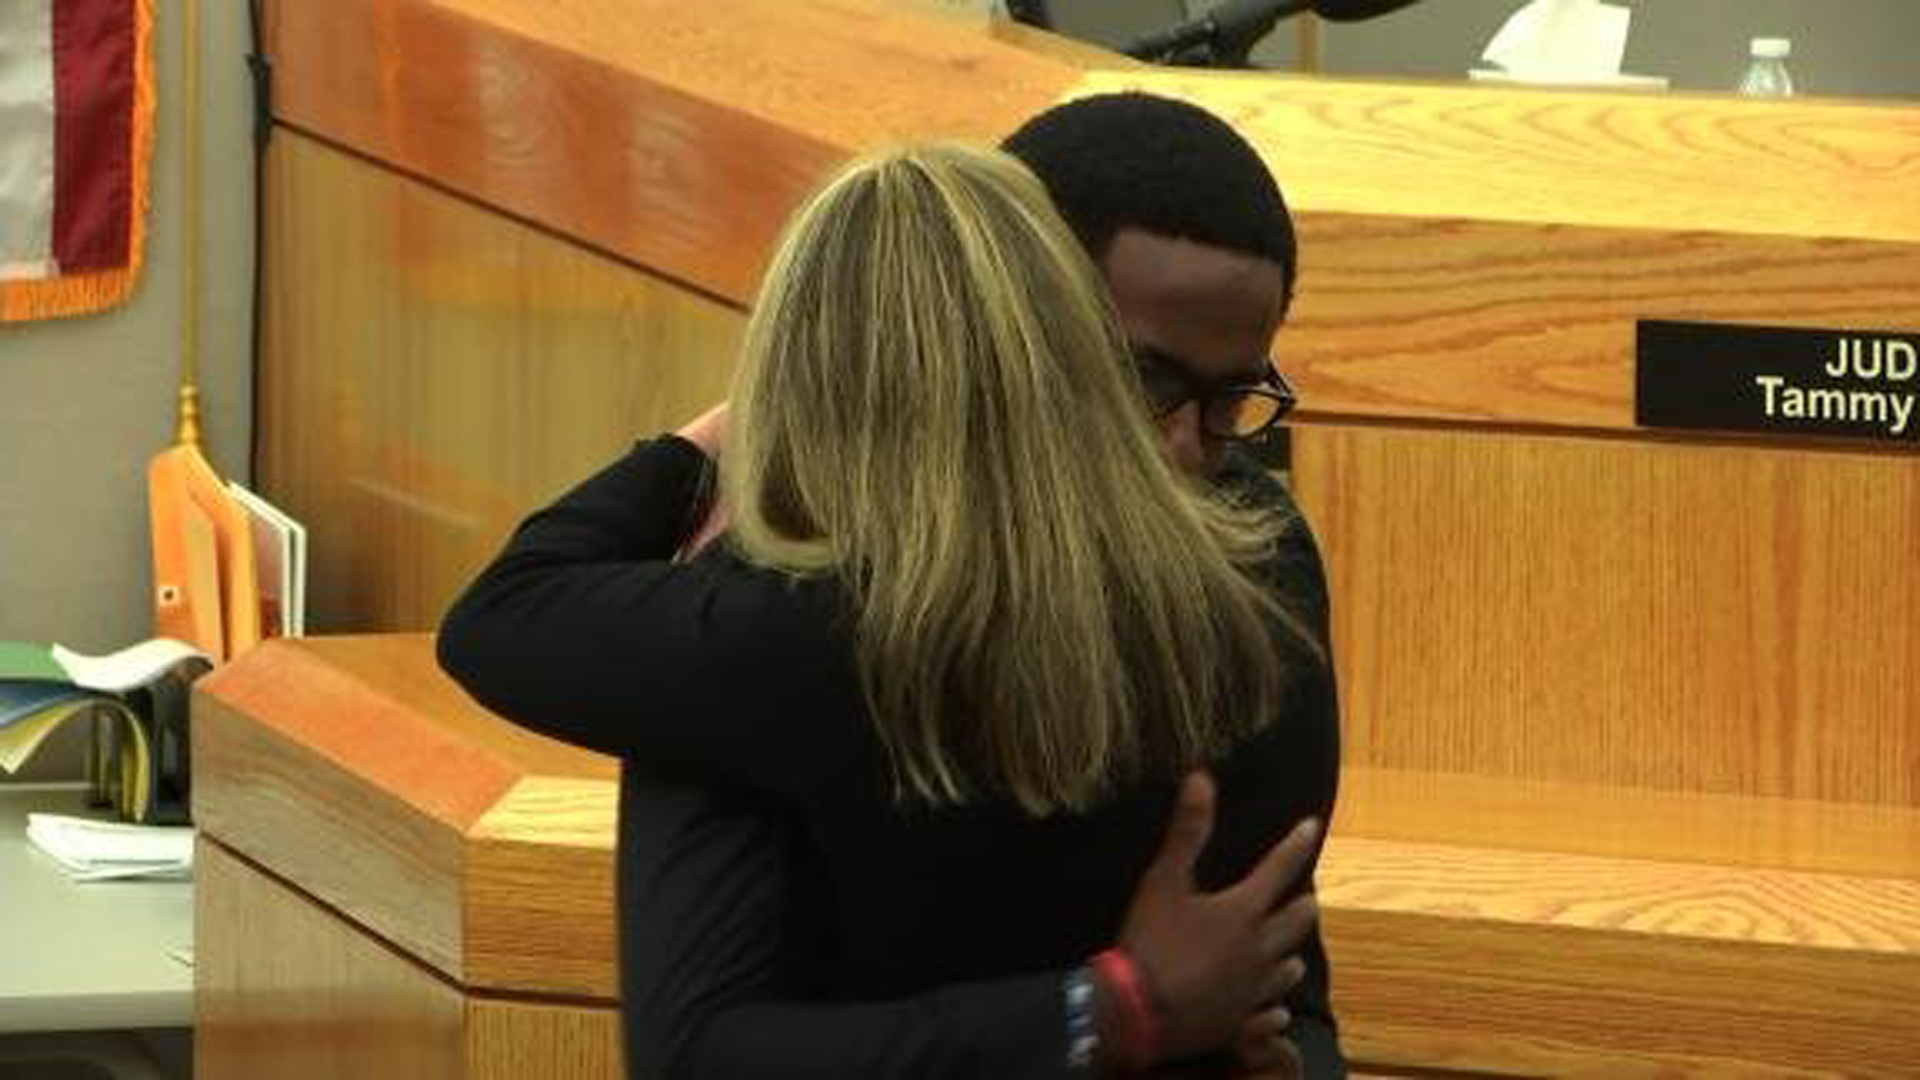 After a jury sentenced former Dallas Police Officer Amber Guyger to 10 years in prison for the murder of Botham Jean, his brother gave her a hug after giving a statement on Oct. 2, 2019. (Credit: KTVT)